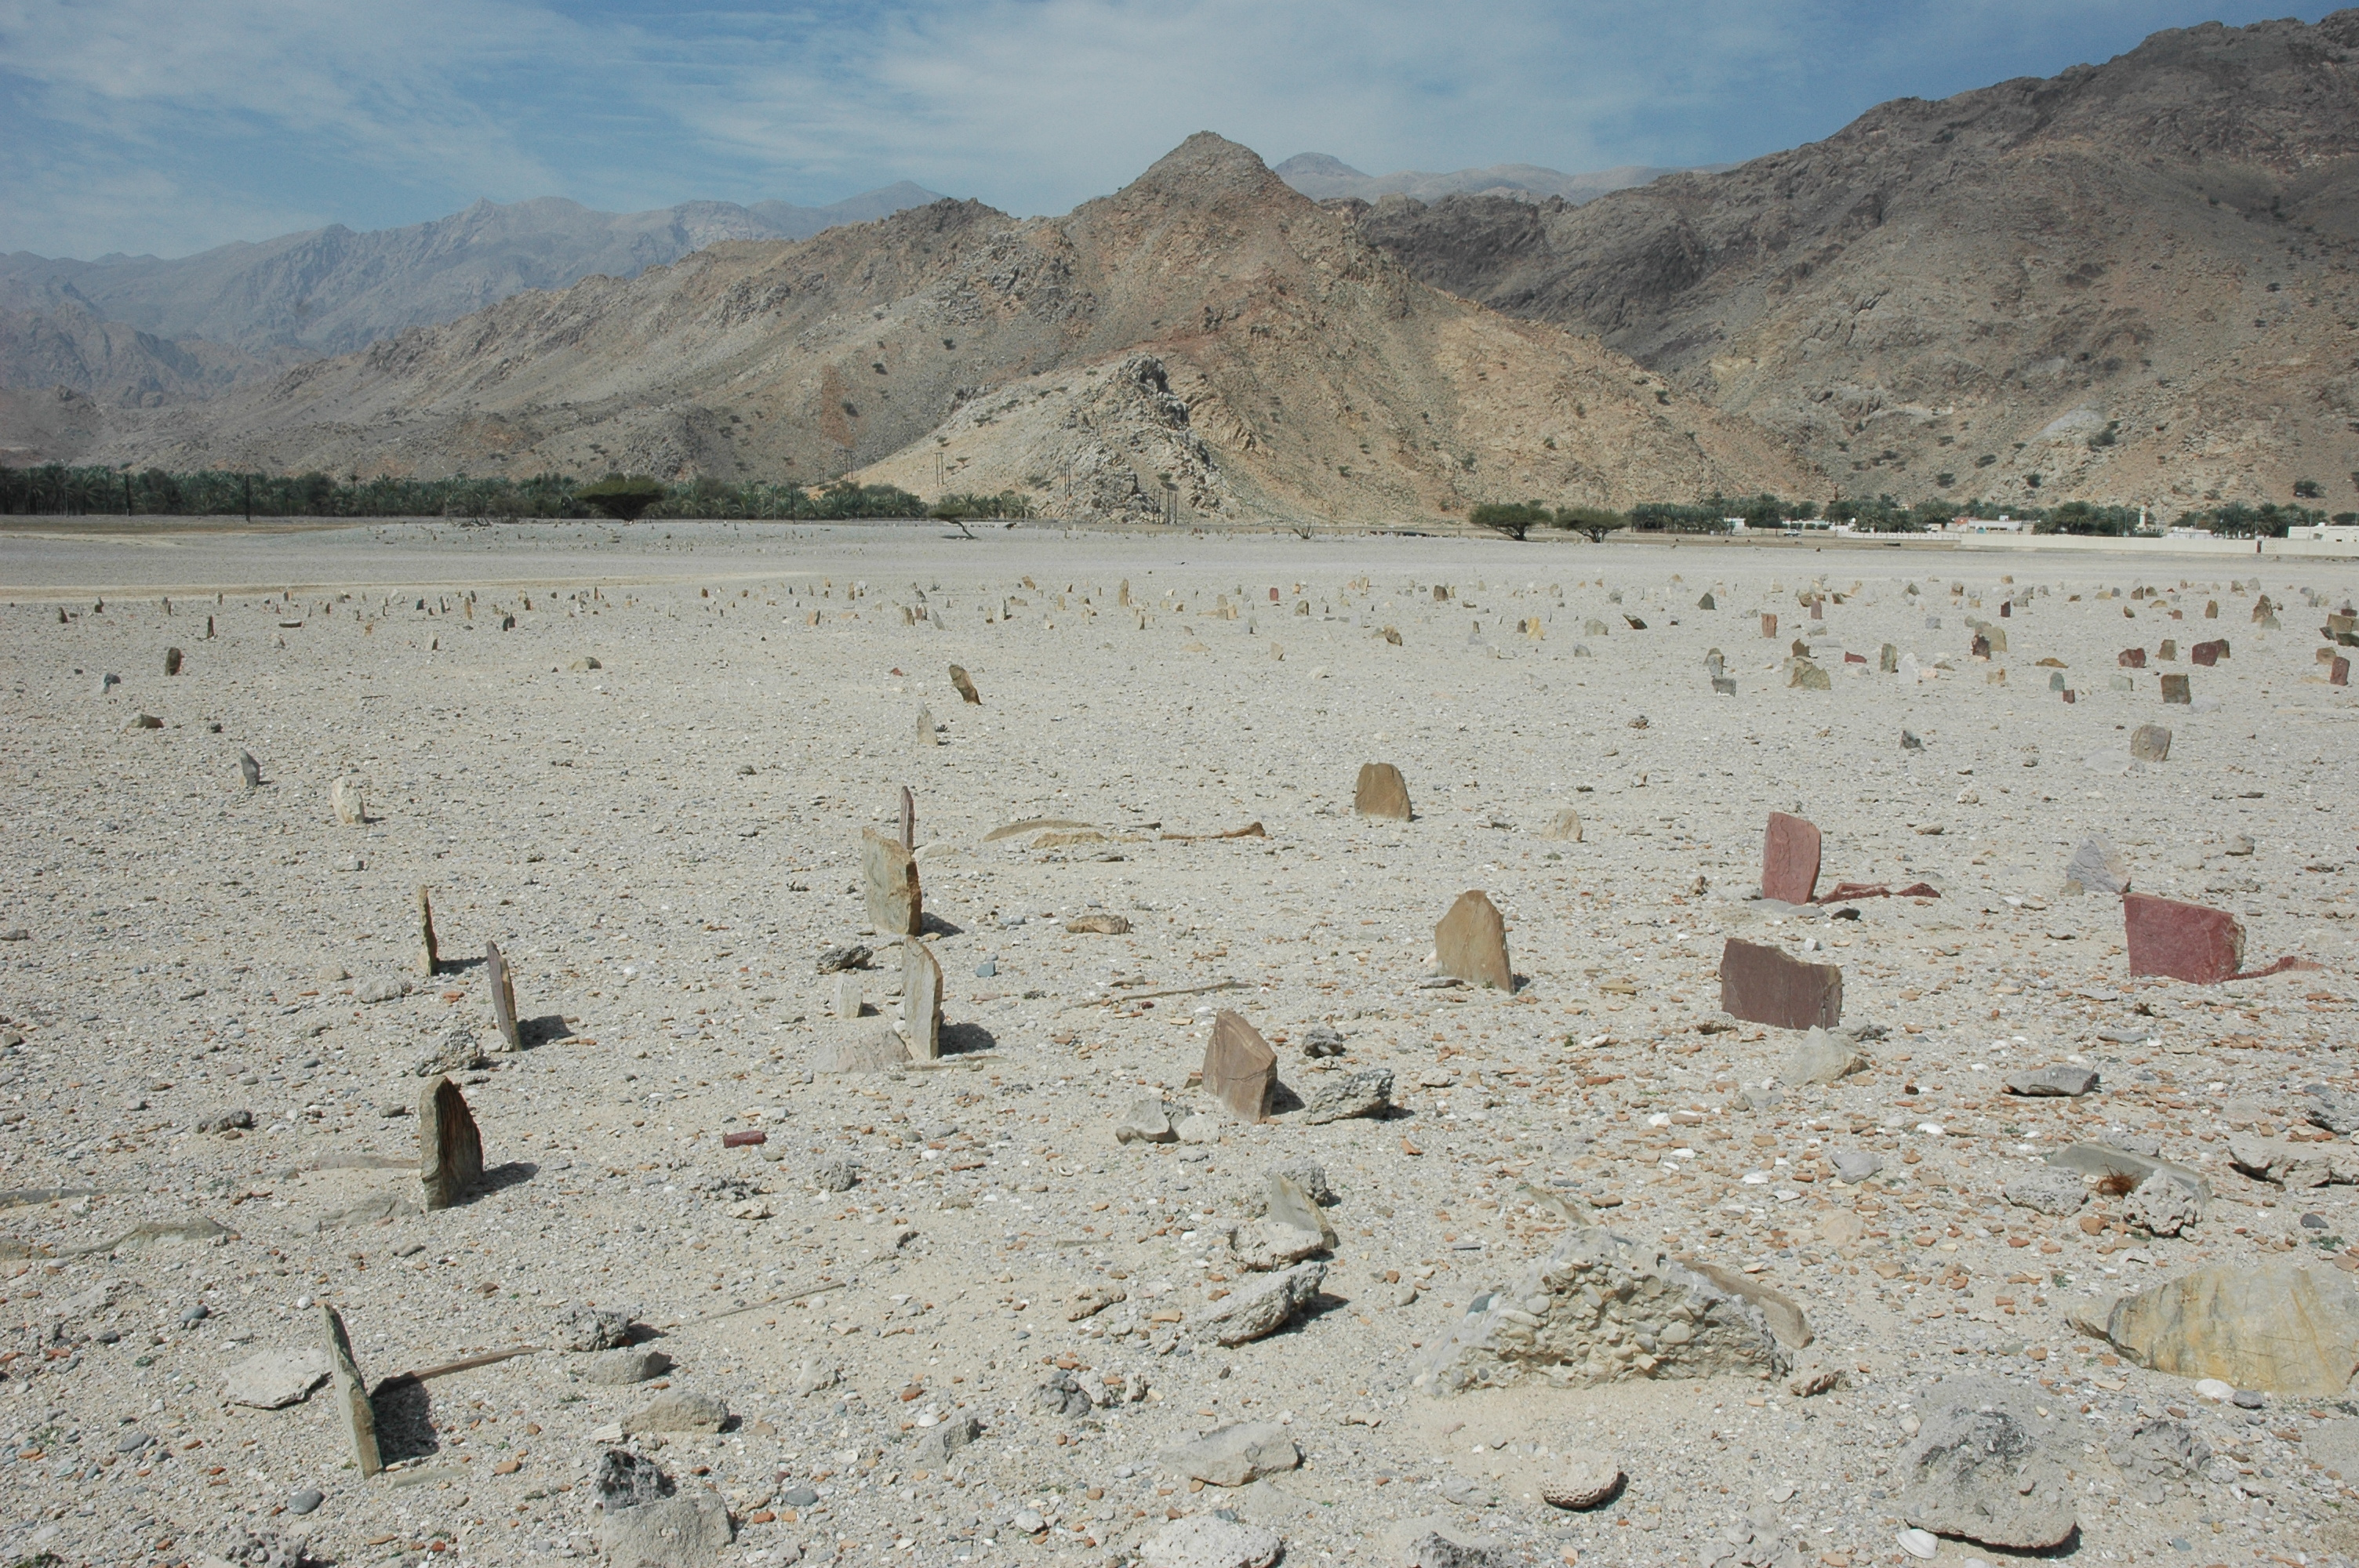 Makbarat al Sahabi, a disputed heritage site, looking northwest, near Dibba on the poorly defined border between the United Arab Emirates and Oman,  22 February, 2007,  photograph by Gordon Brent Ingram